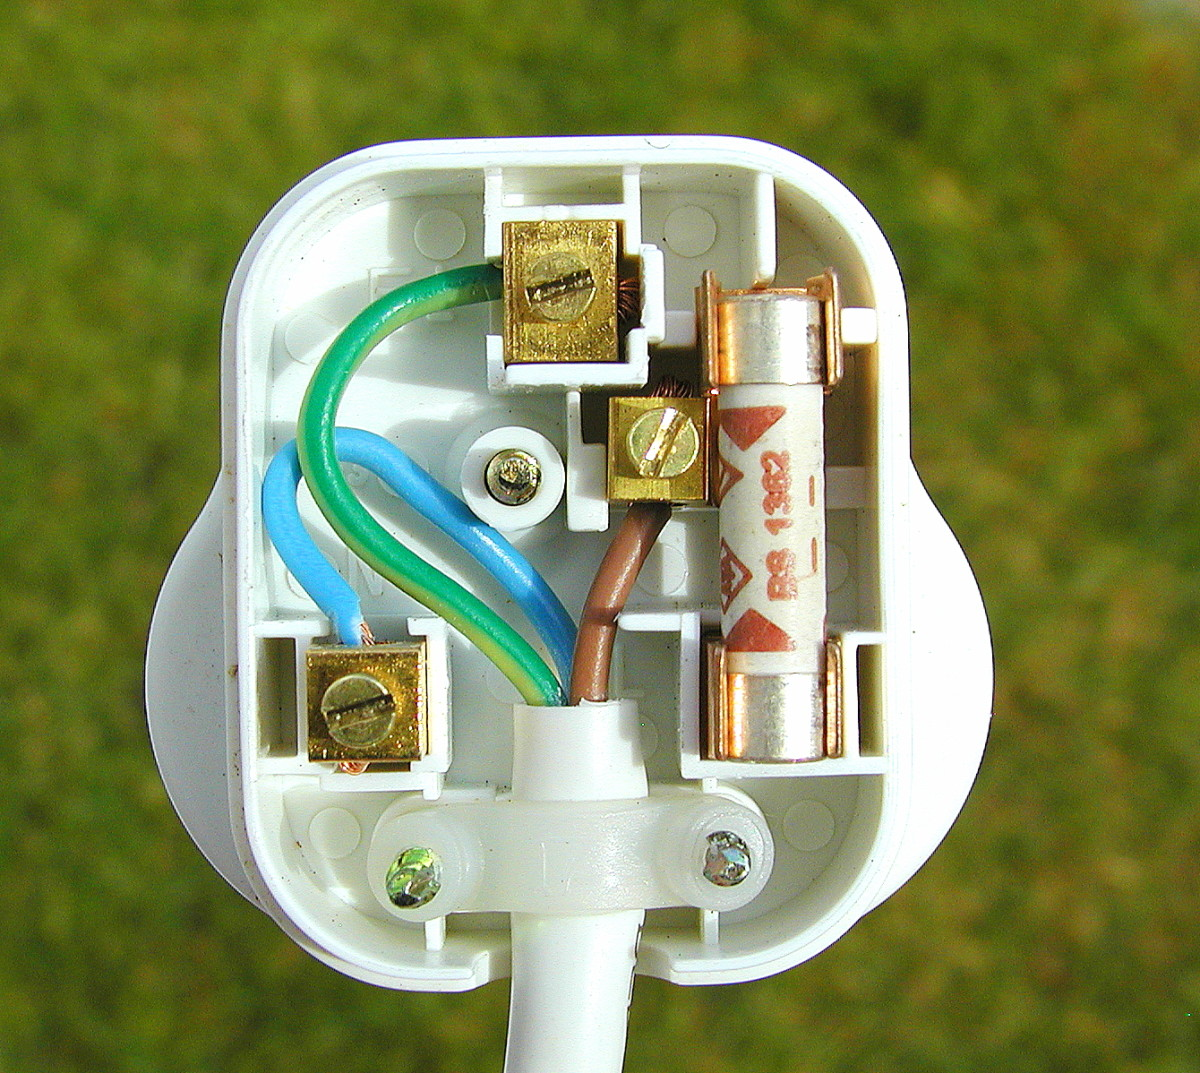 Wiring a UK Plug Correctly and Safely - A Pictorial Guide